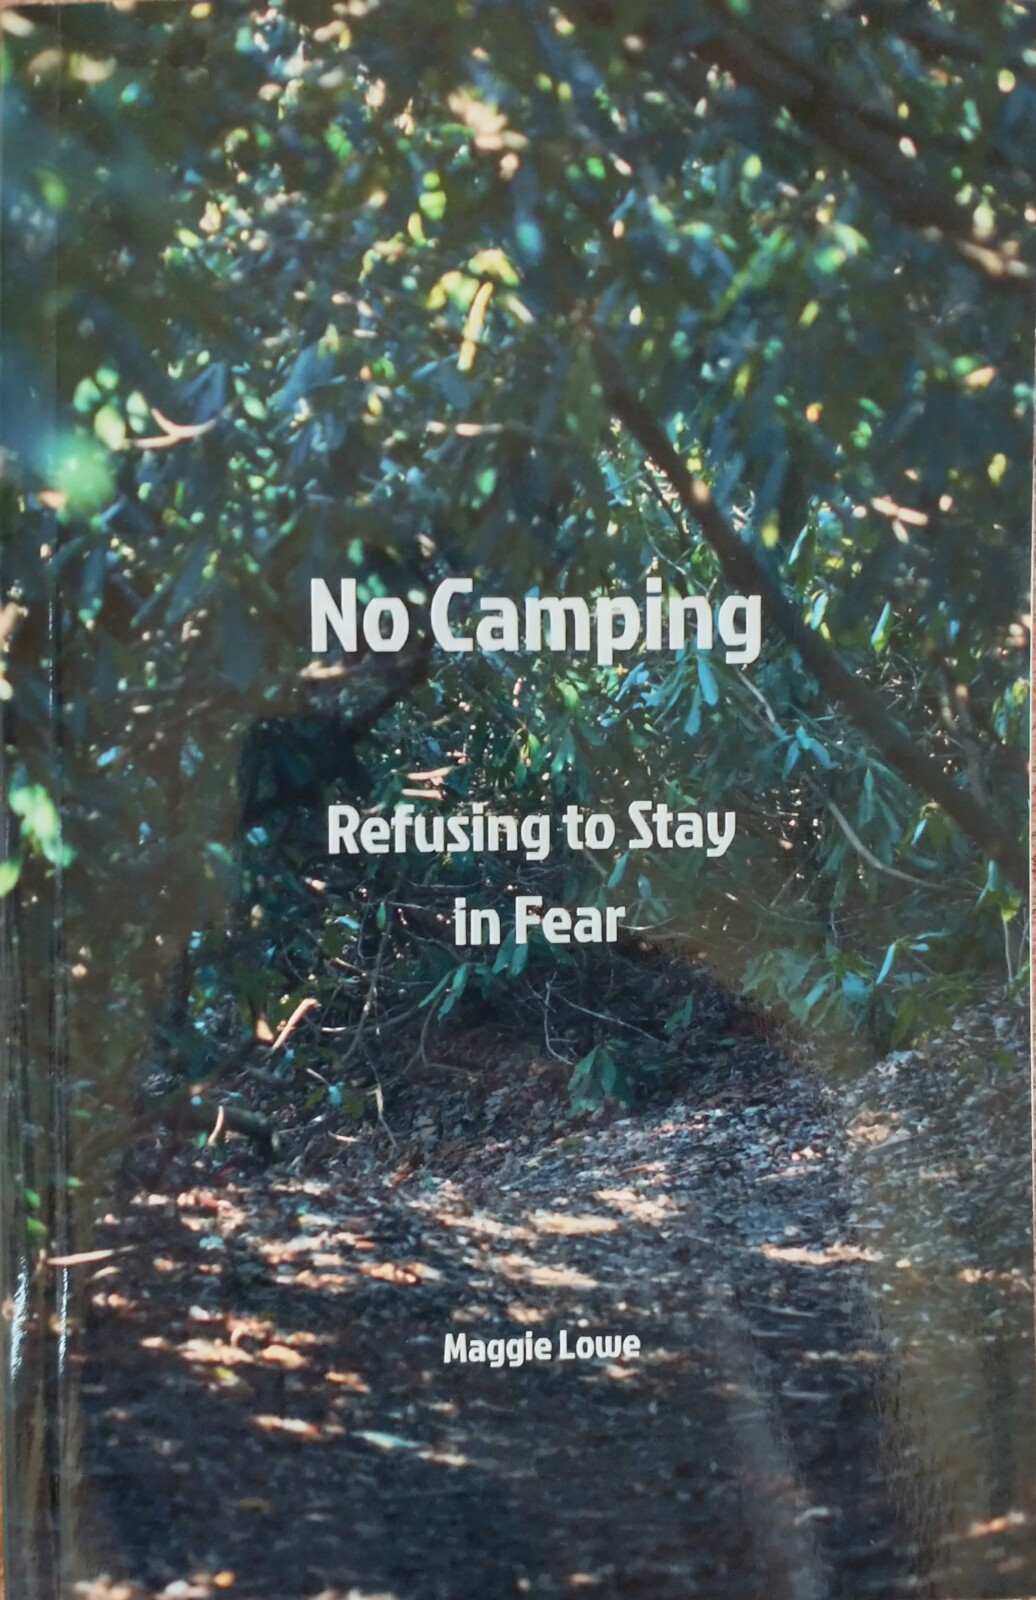 No Camping: Refusing to Stay in Fear by Maggie Lowe